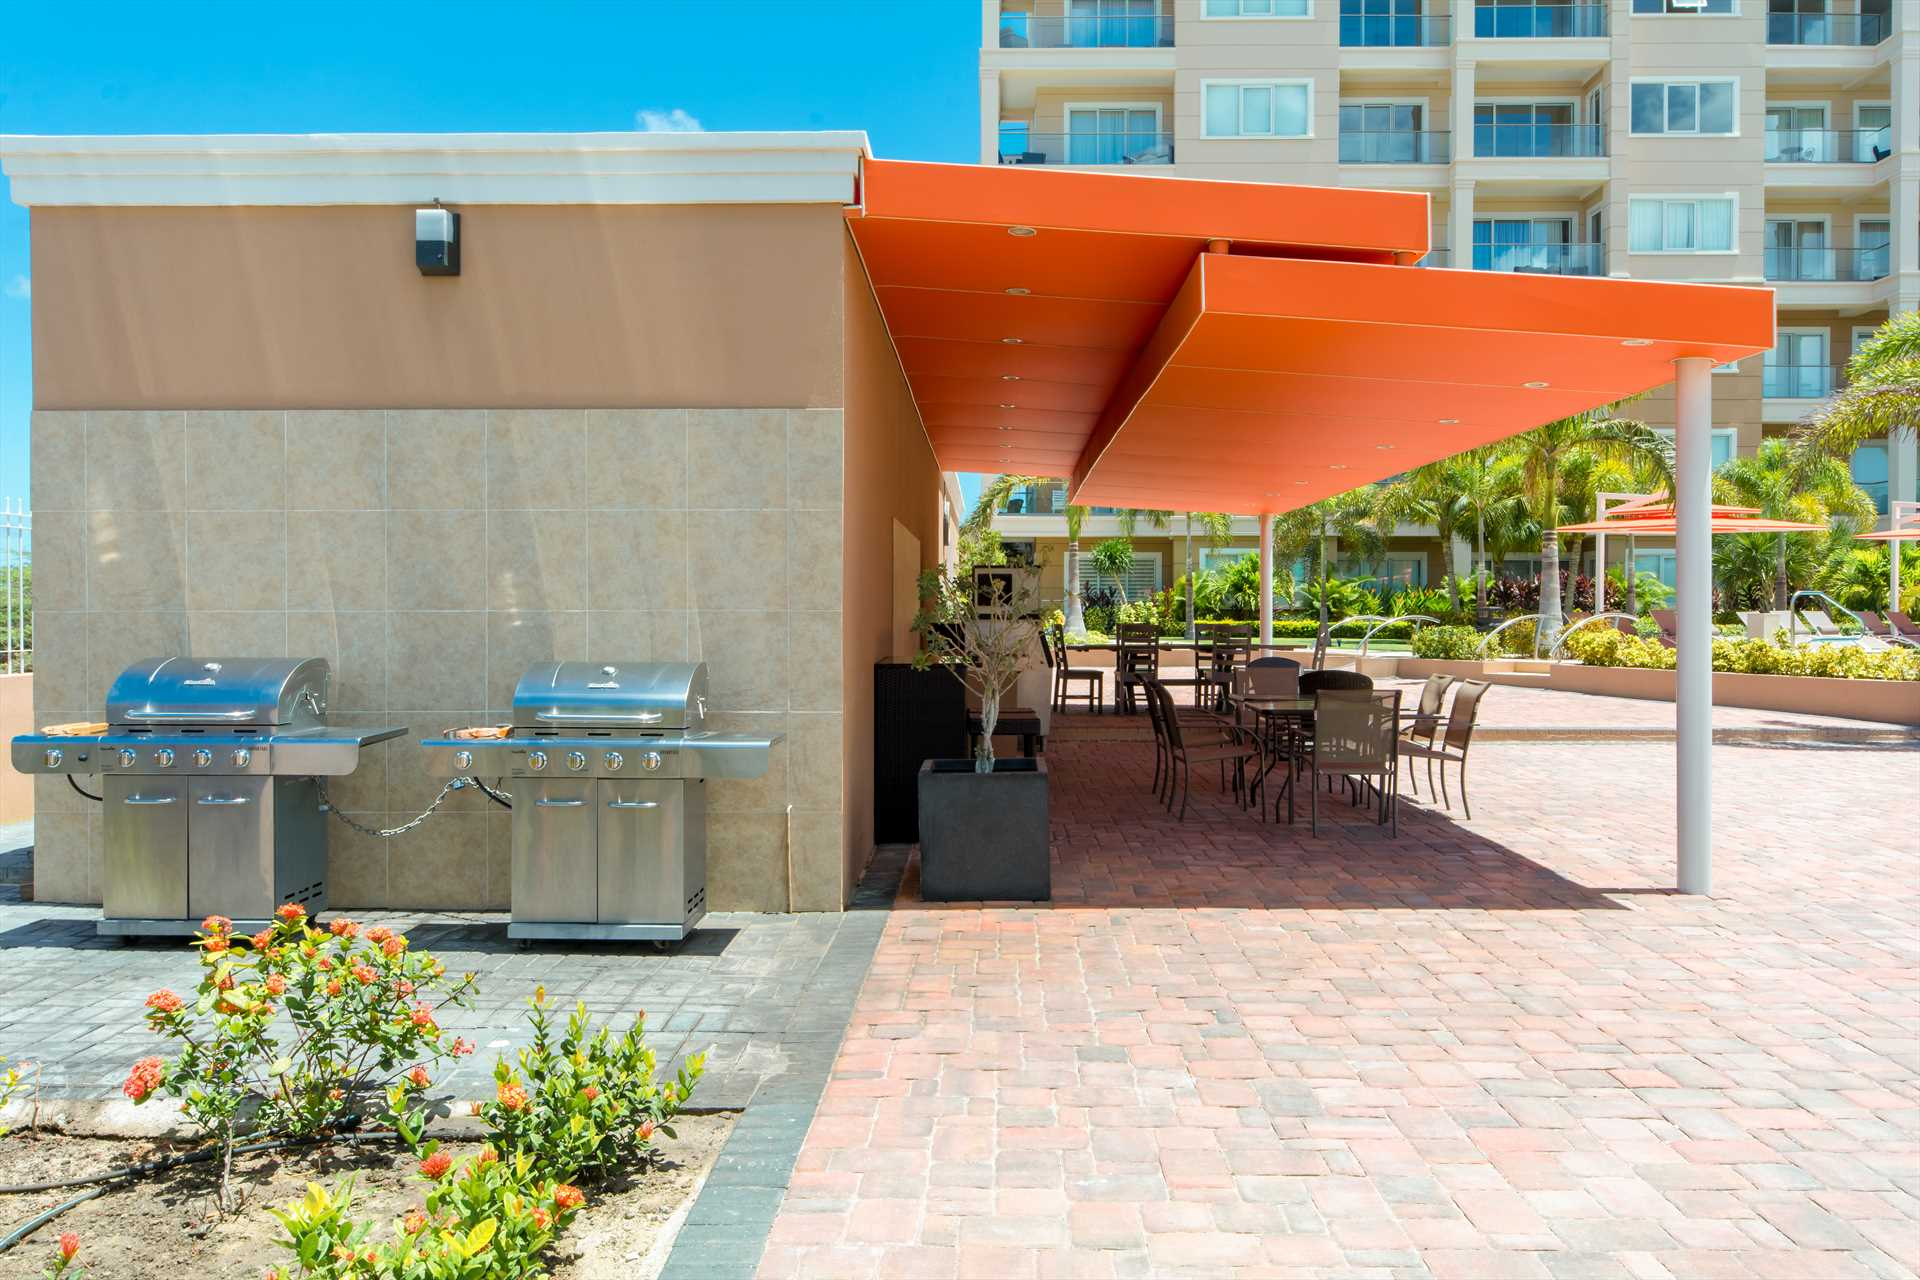 The communal alfresco dining space with BBQ-grills at the LeVent resort